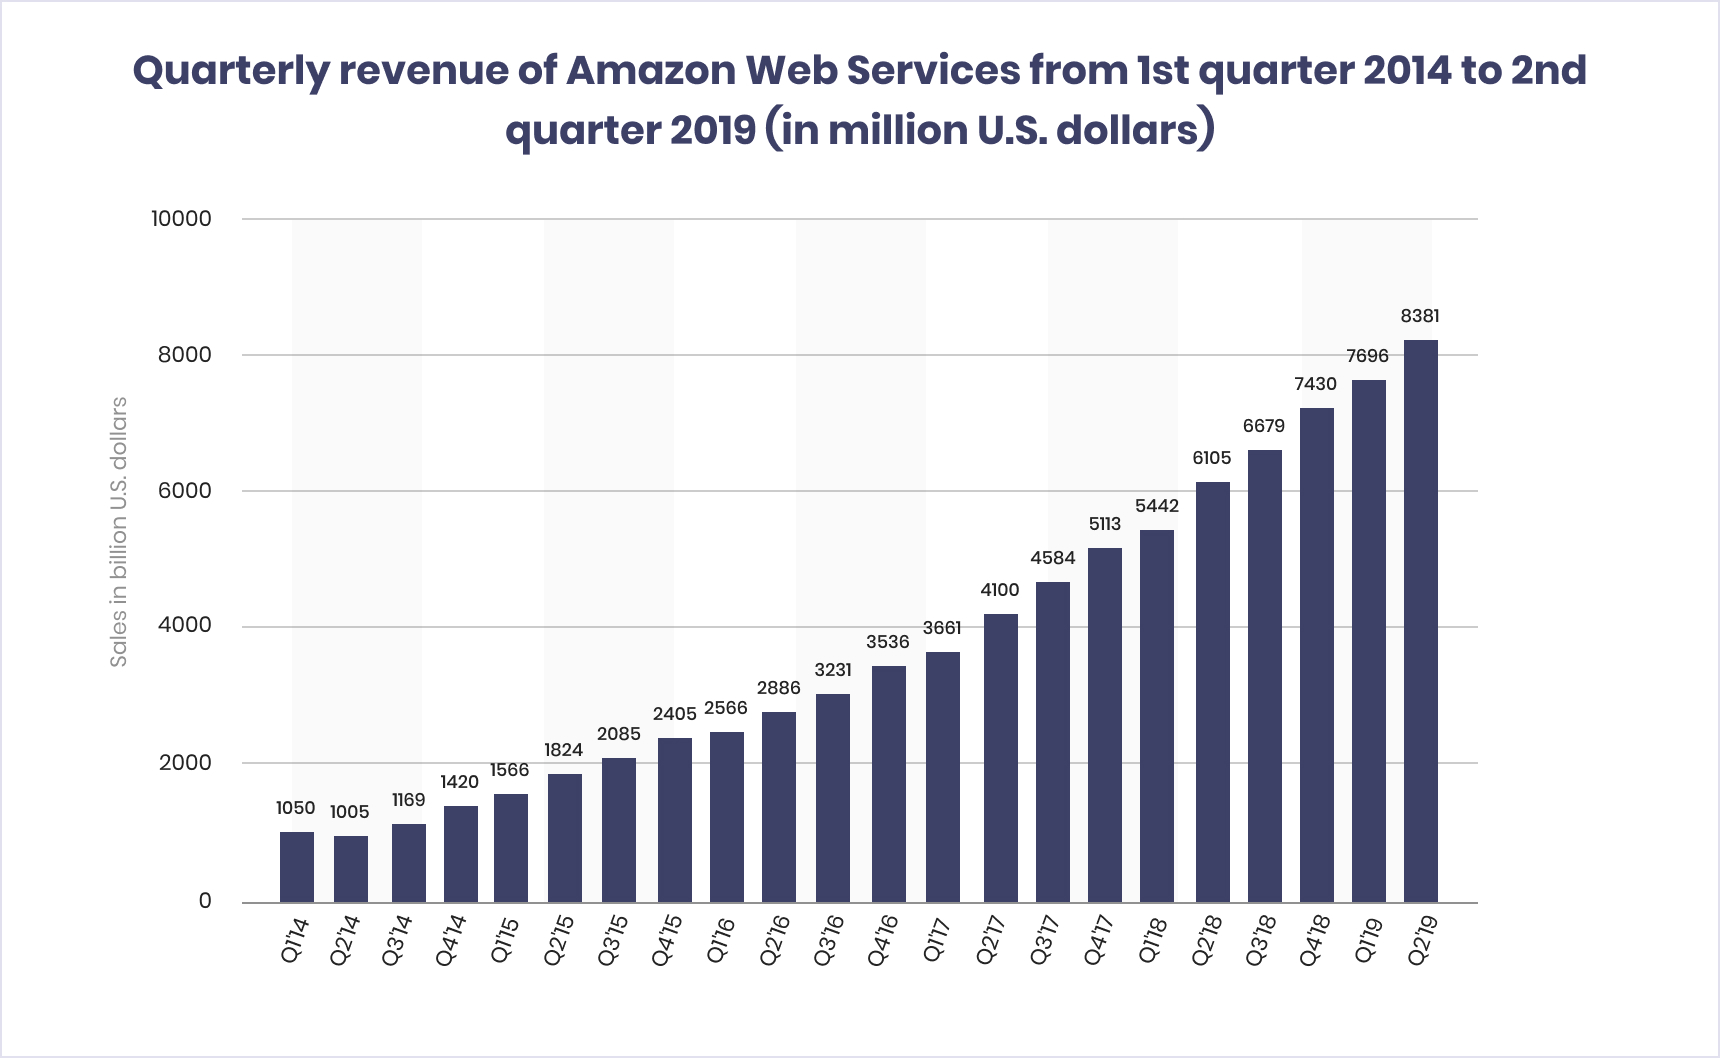 Quarterly revenue of Amazon Web services